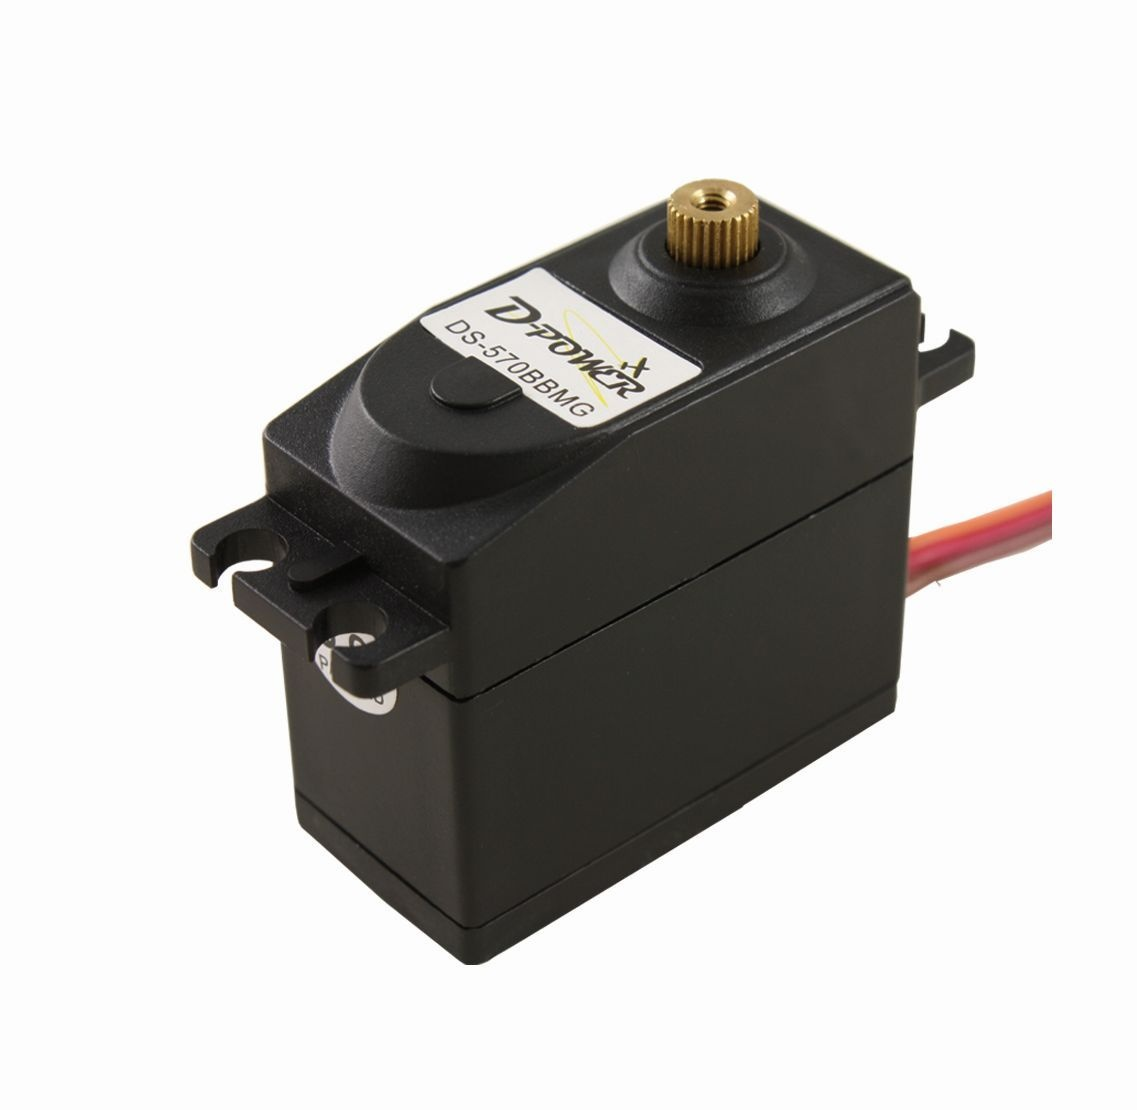 D-Power DS-570BB MG Digital-Servo